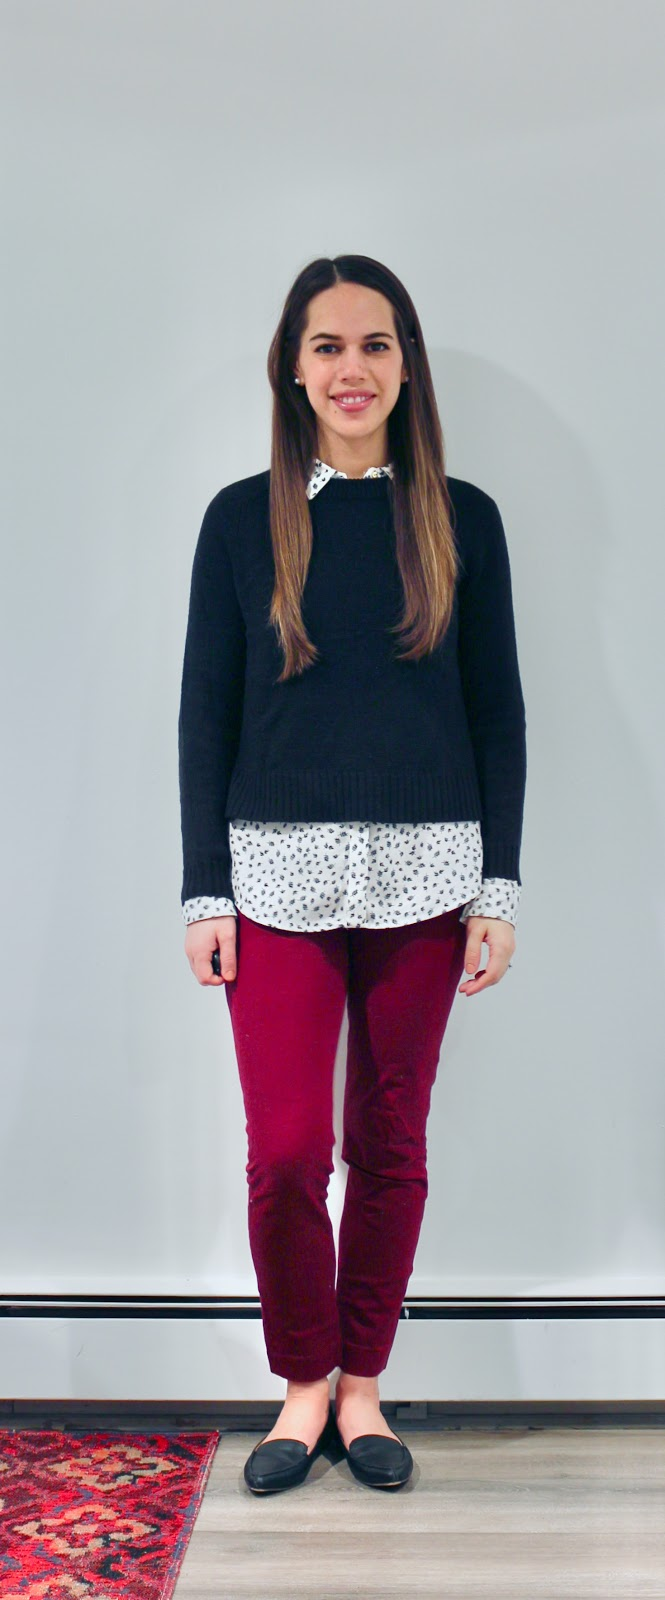 Jules in Flats - Patterned Button Up with Cropped Sweater & Skinny Ankle Pants (Business Casual Winter Workwear on a Budget)